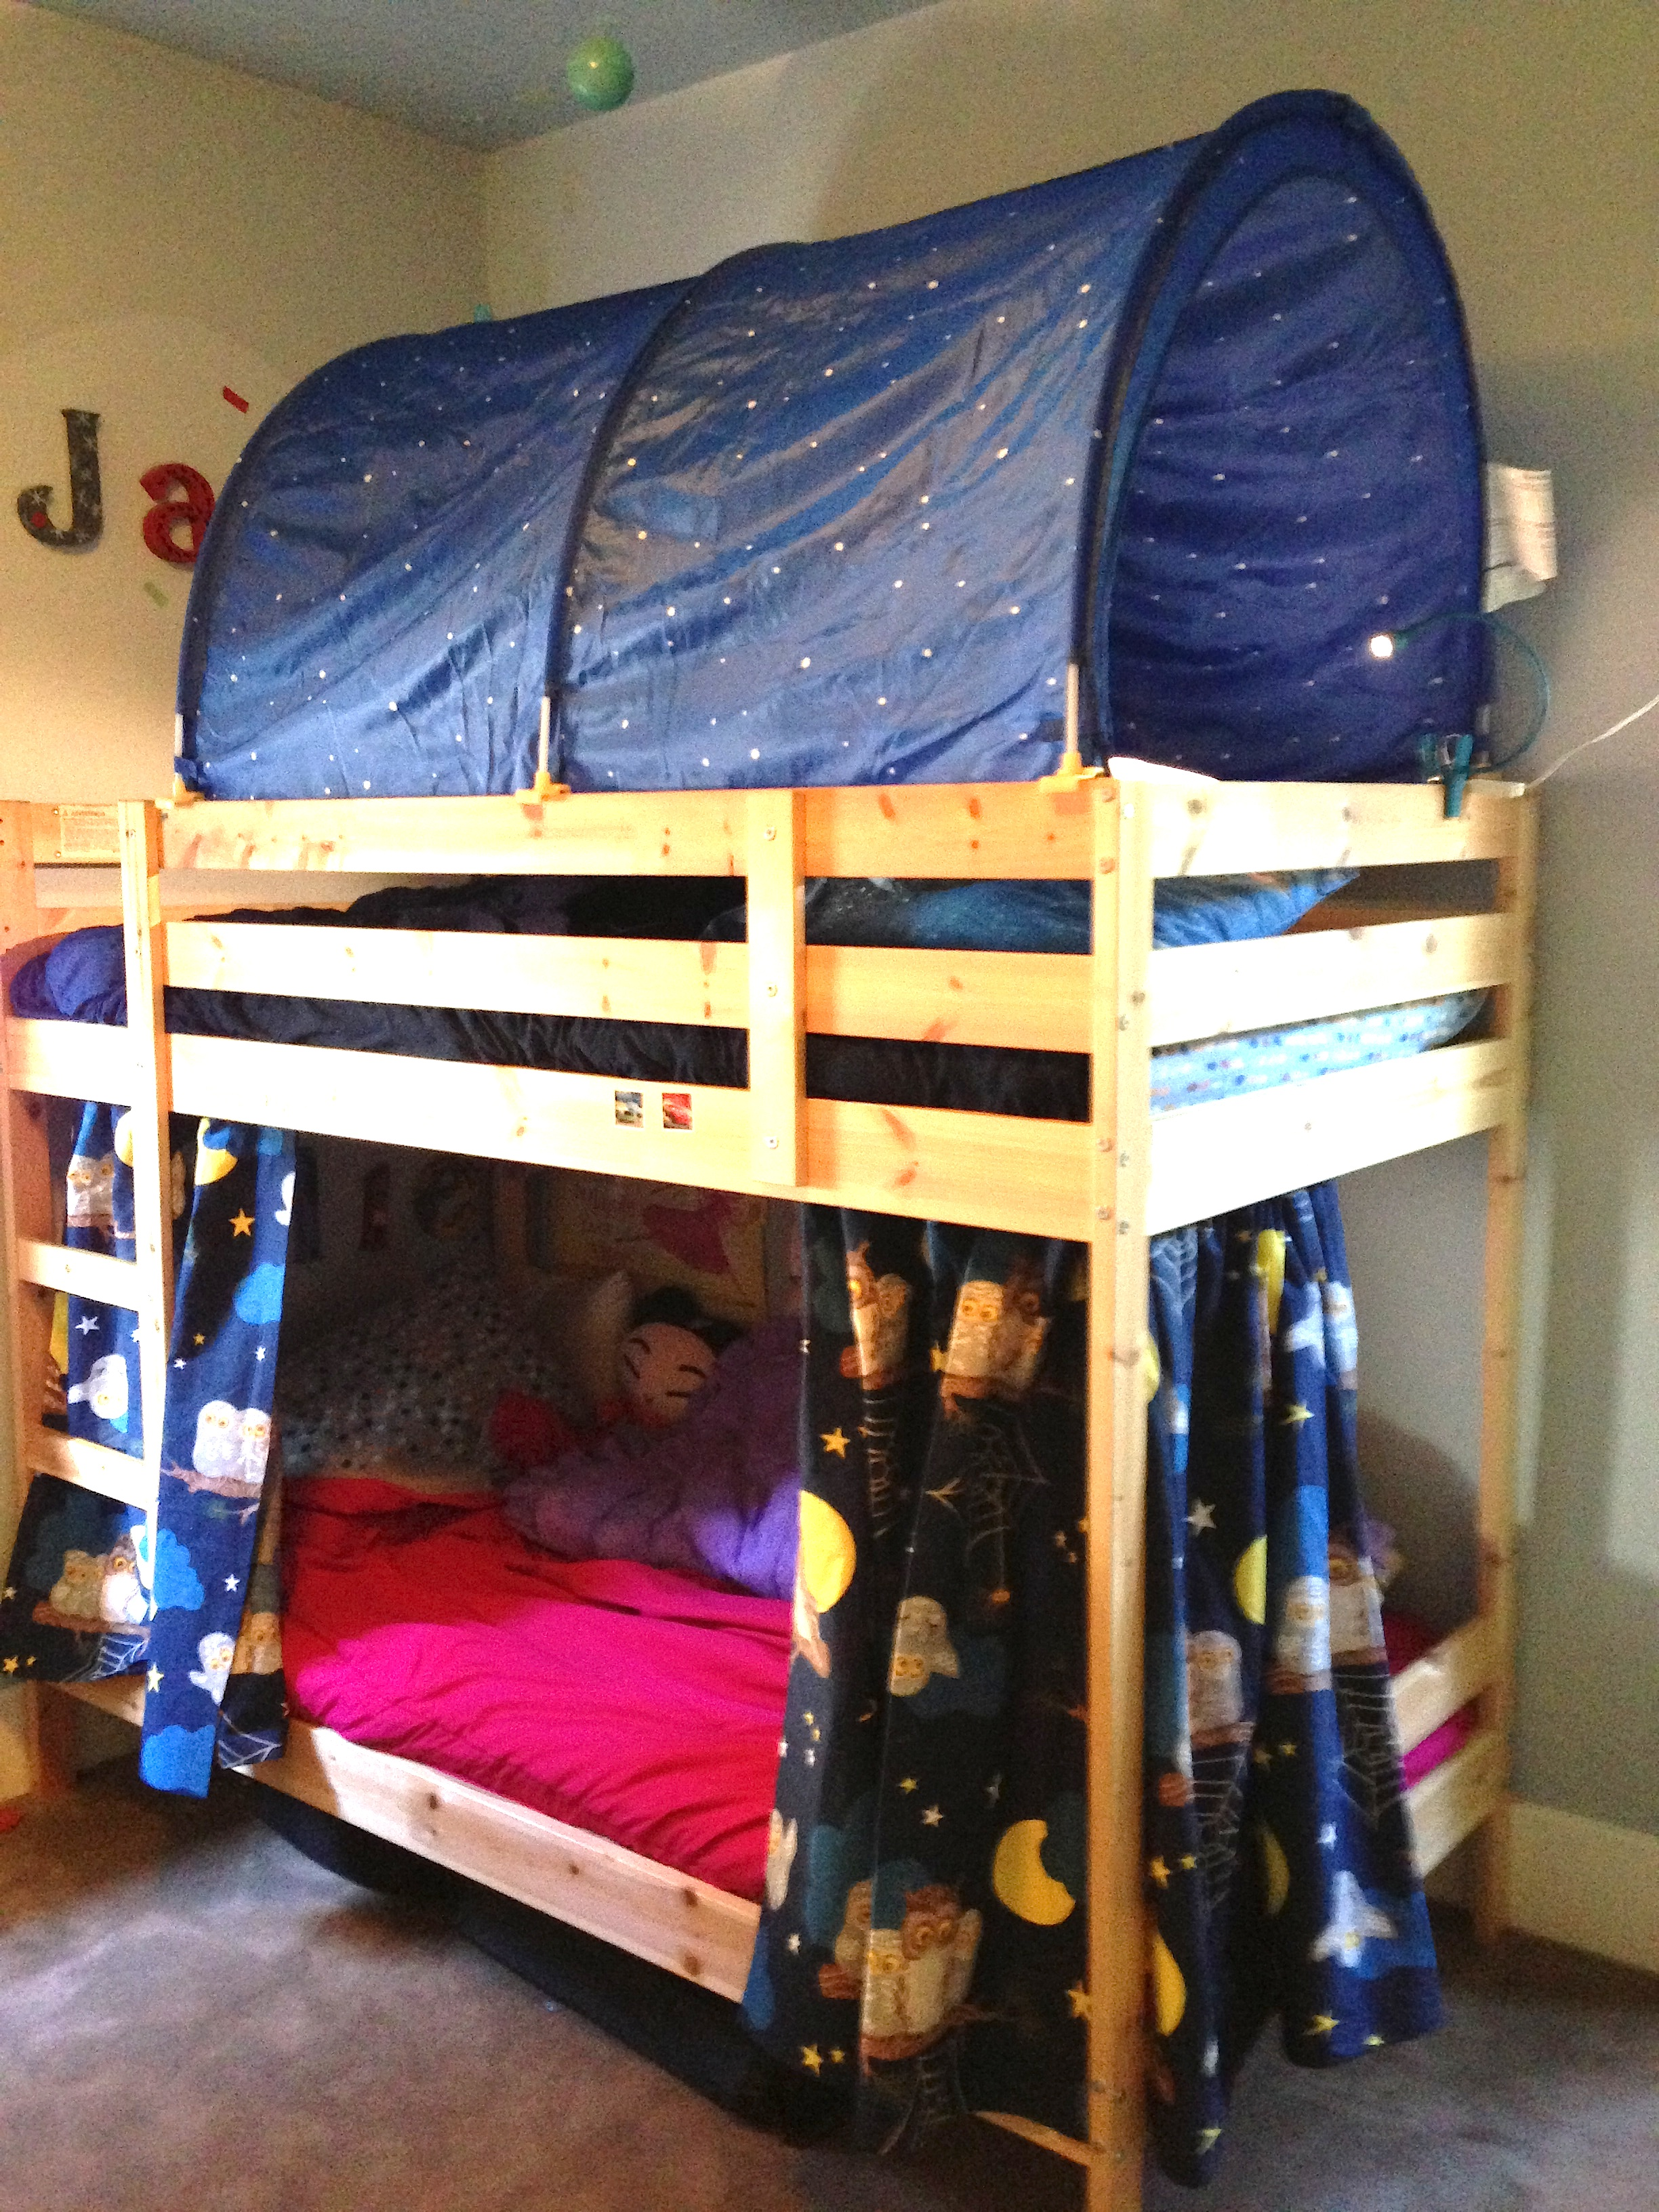 Bunk Bed Curtains | Bunk Bed Curtains | Bunk Bed Playhouse Curtains